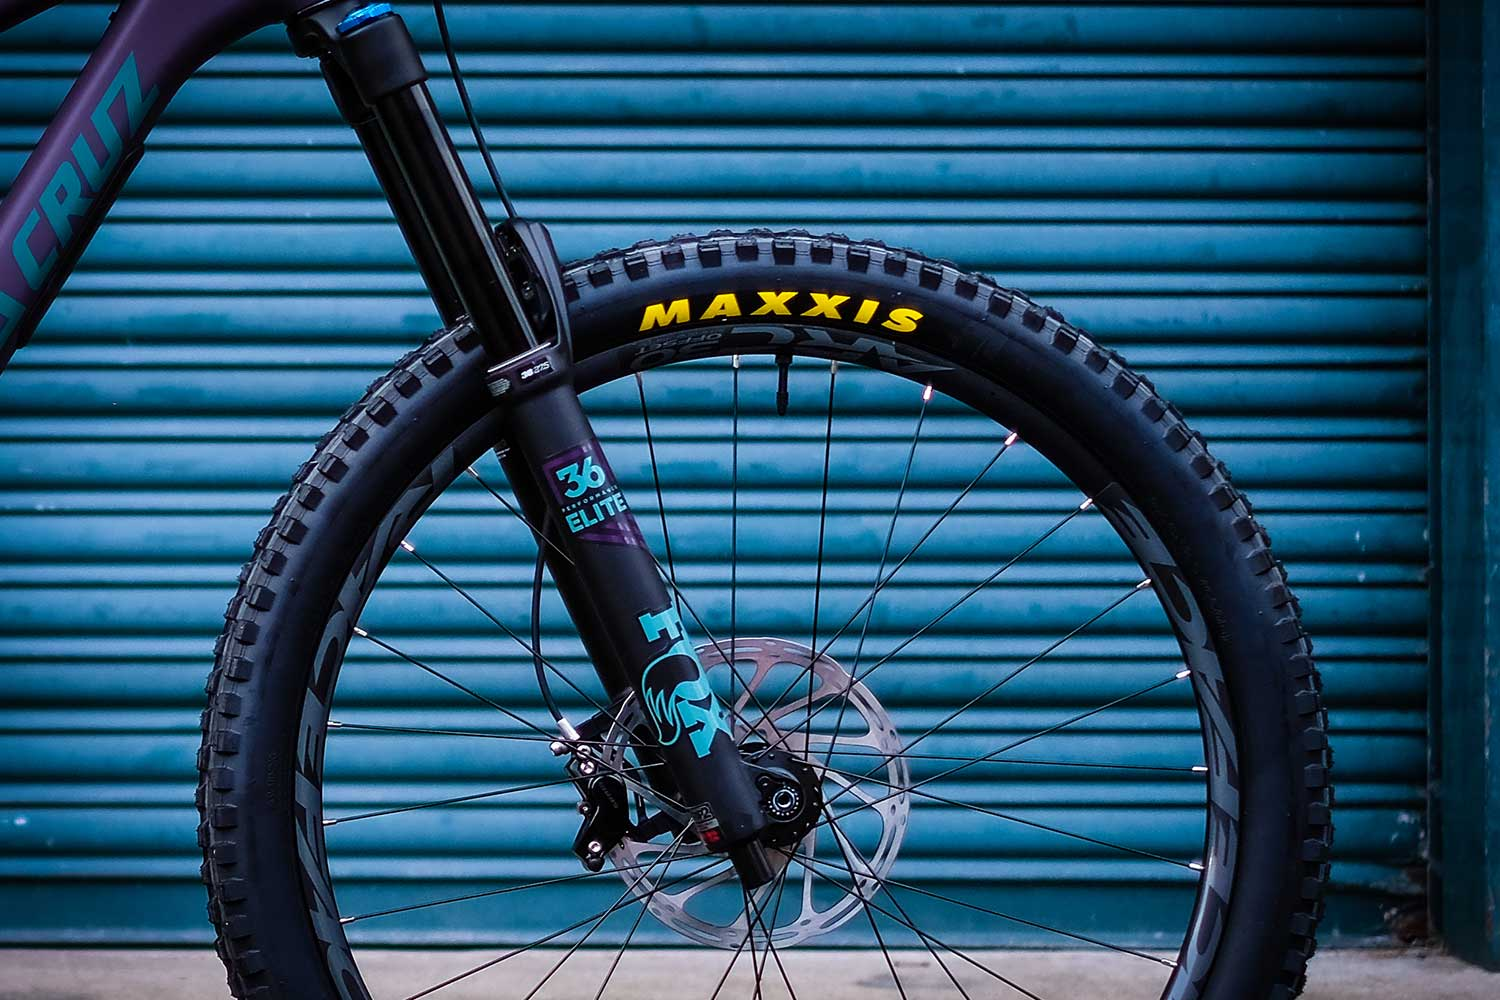 Fox 36 Fork & Maxxis Tyre